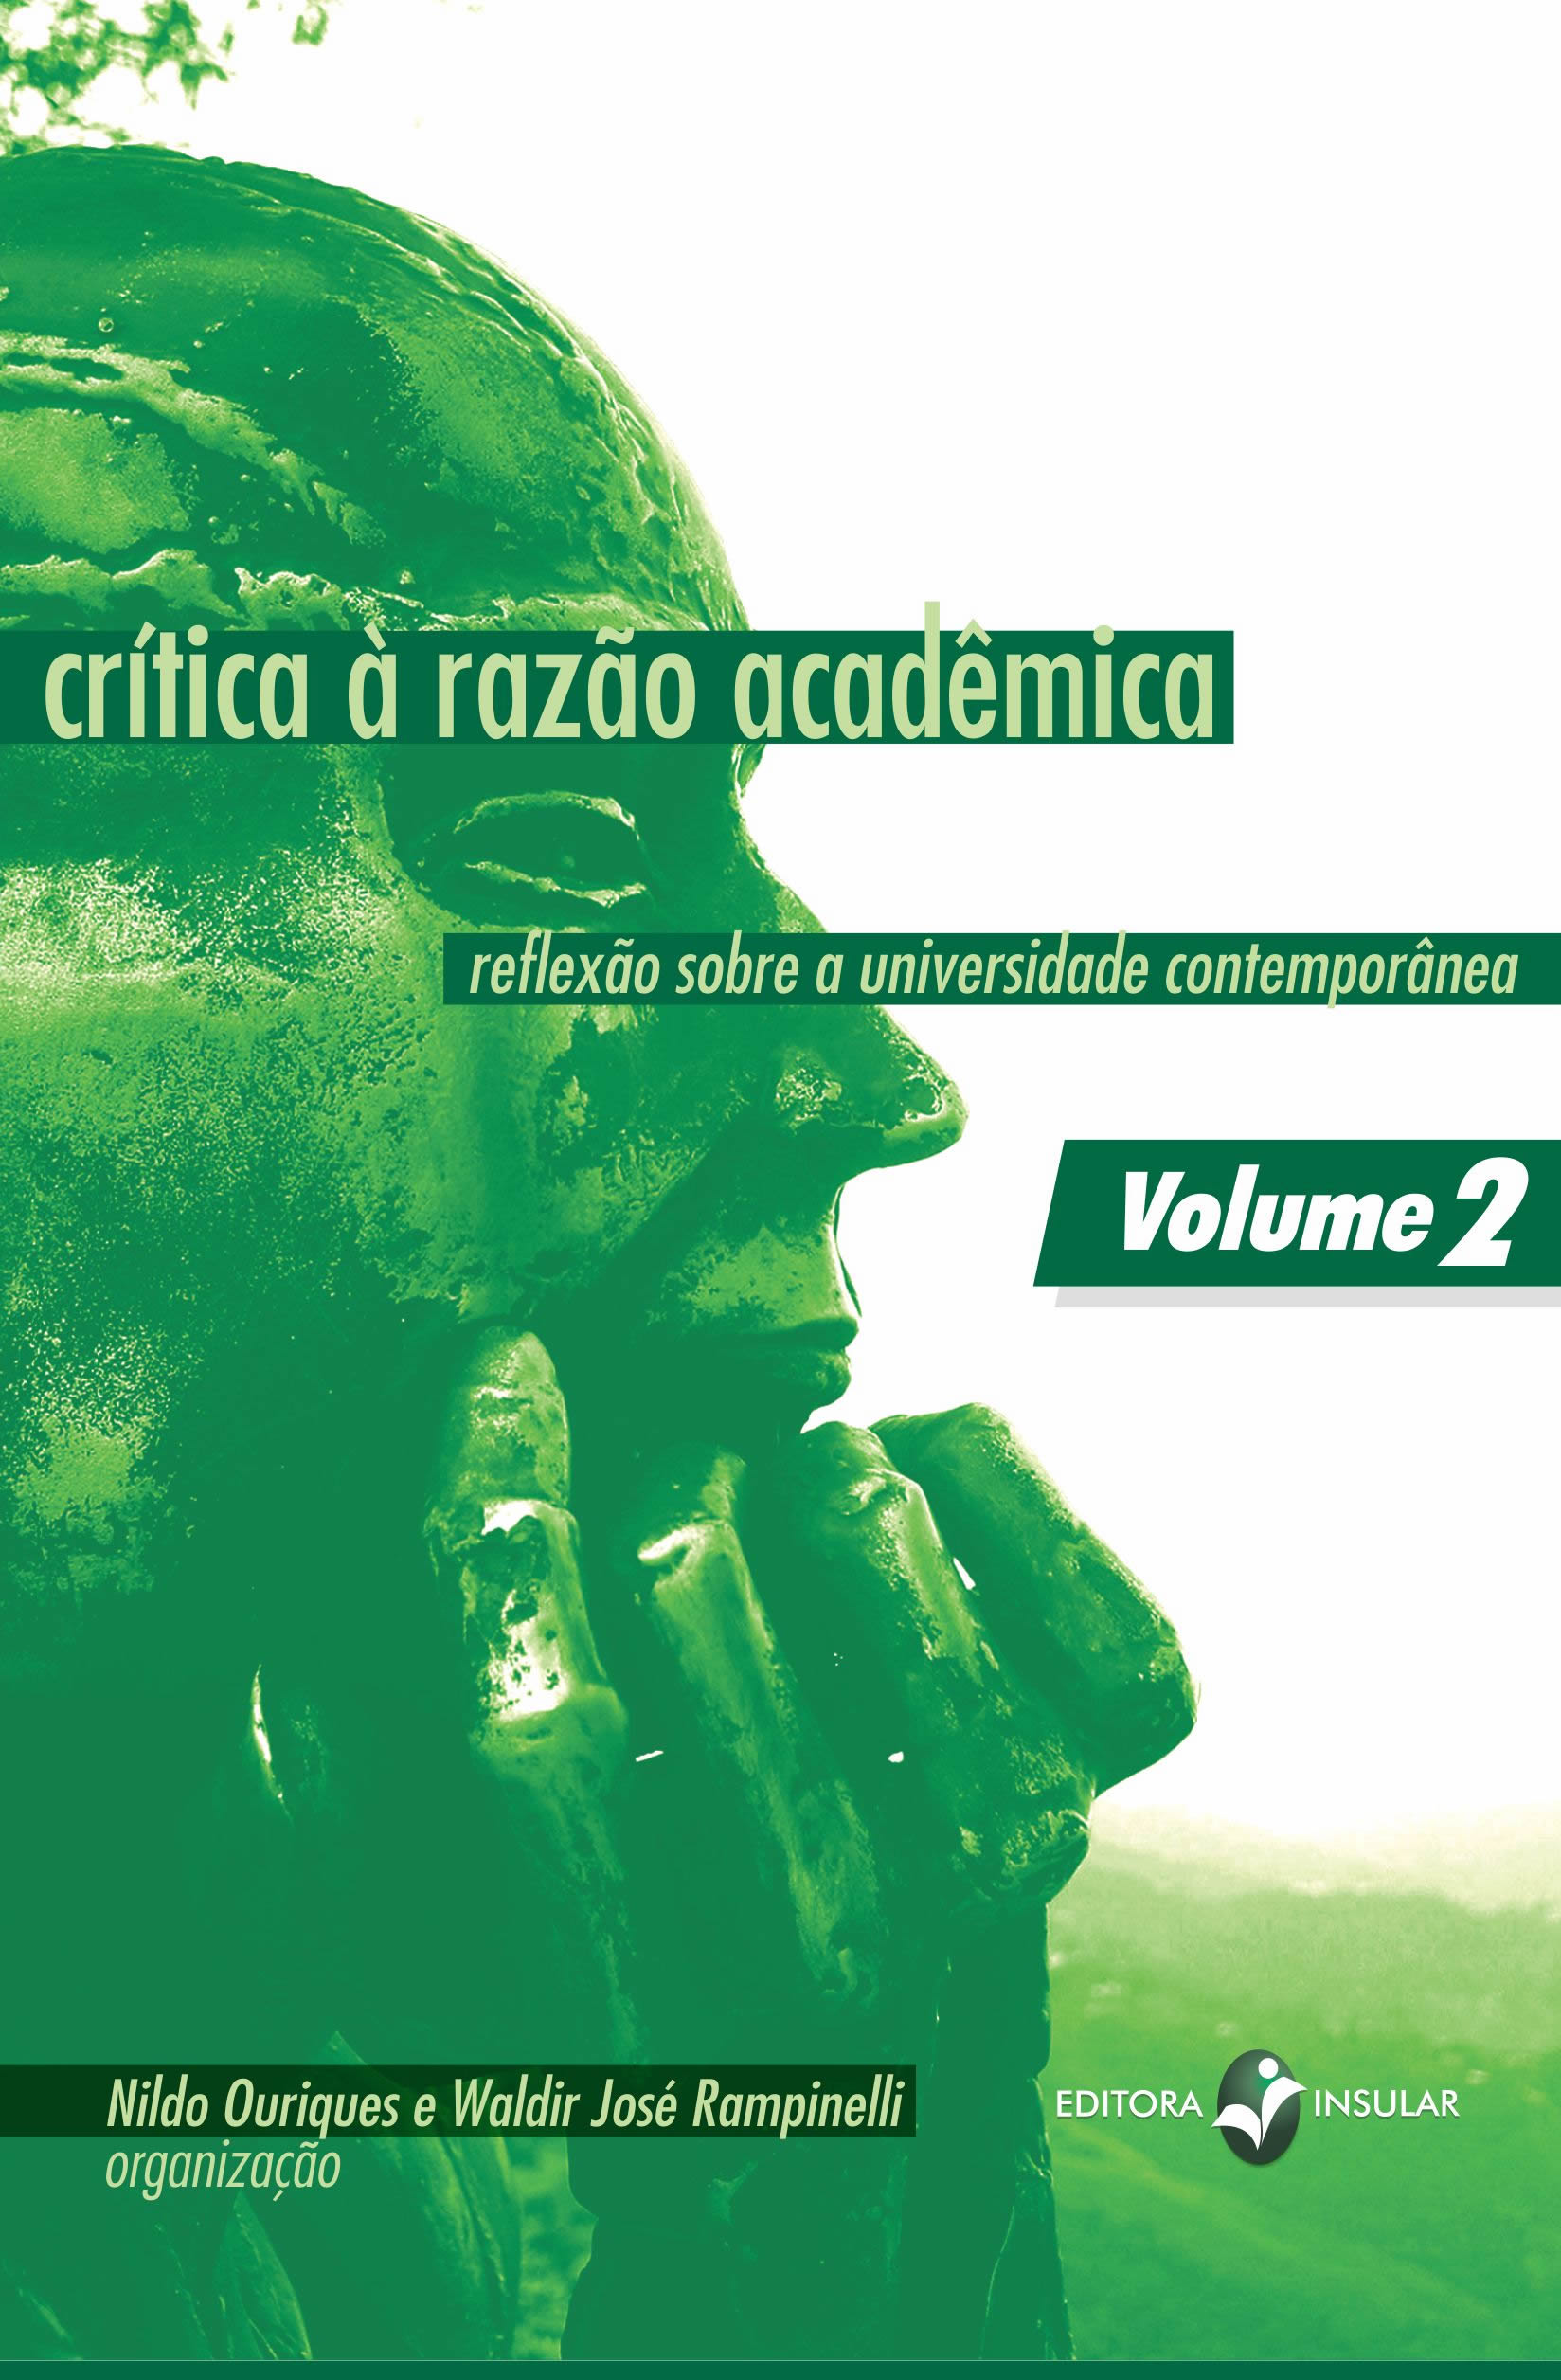 Capa do segundo volume  - Editora Insular